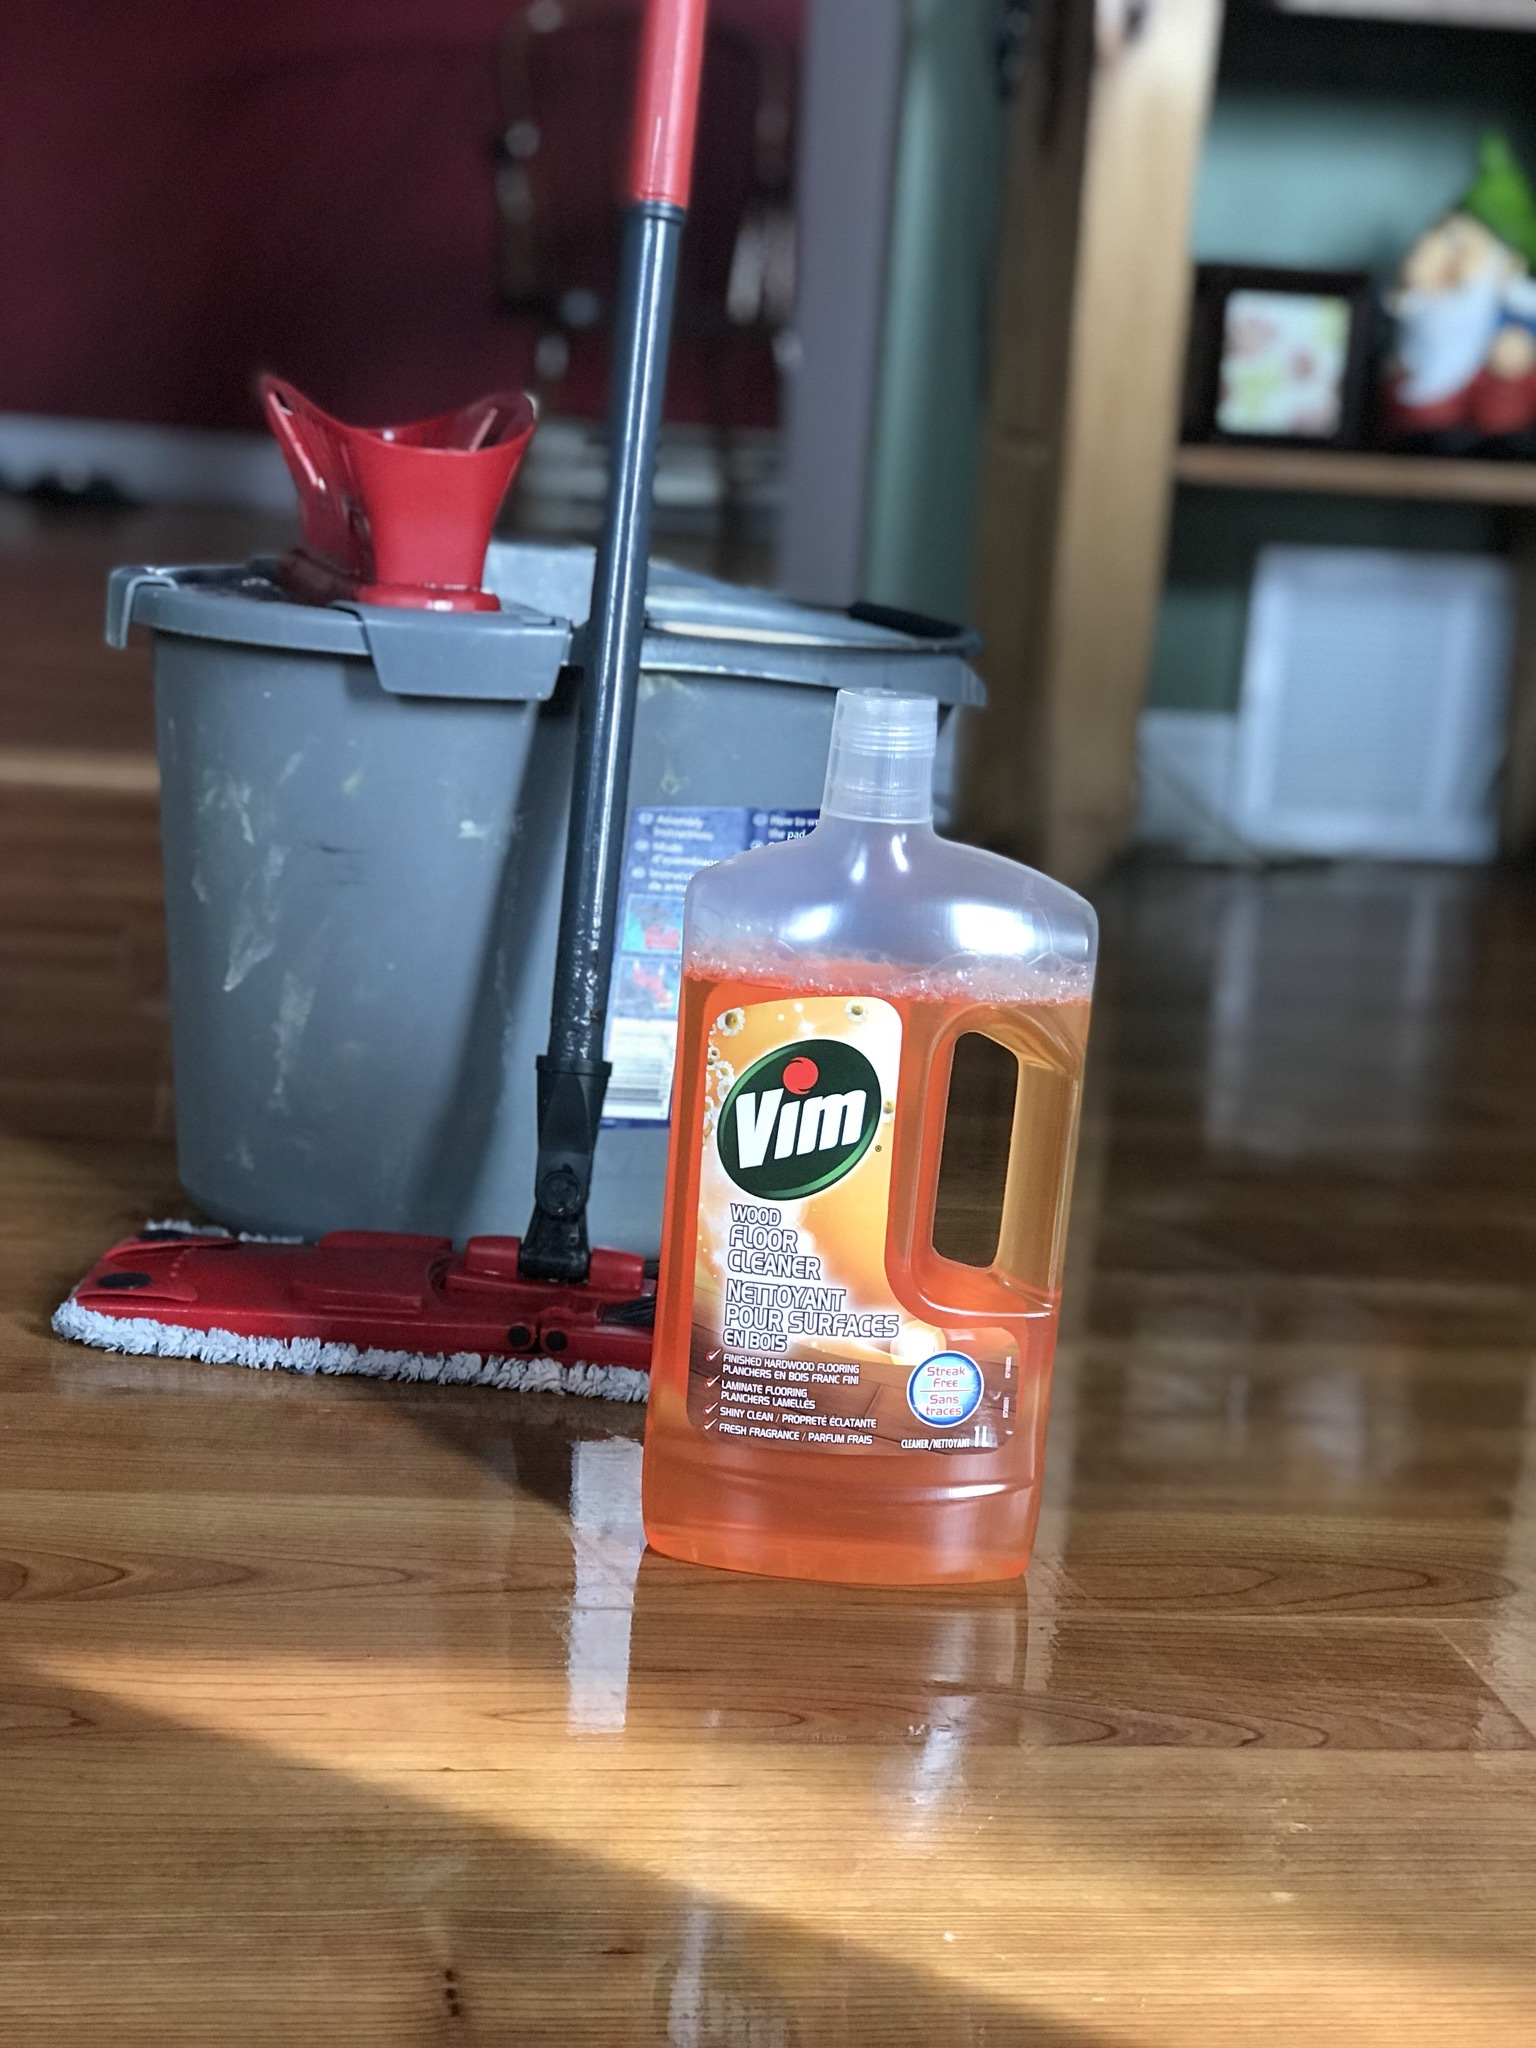 Vim Wood Floor Cleaner Reviews In Household Cleaning